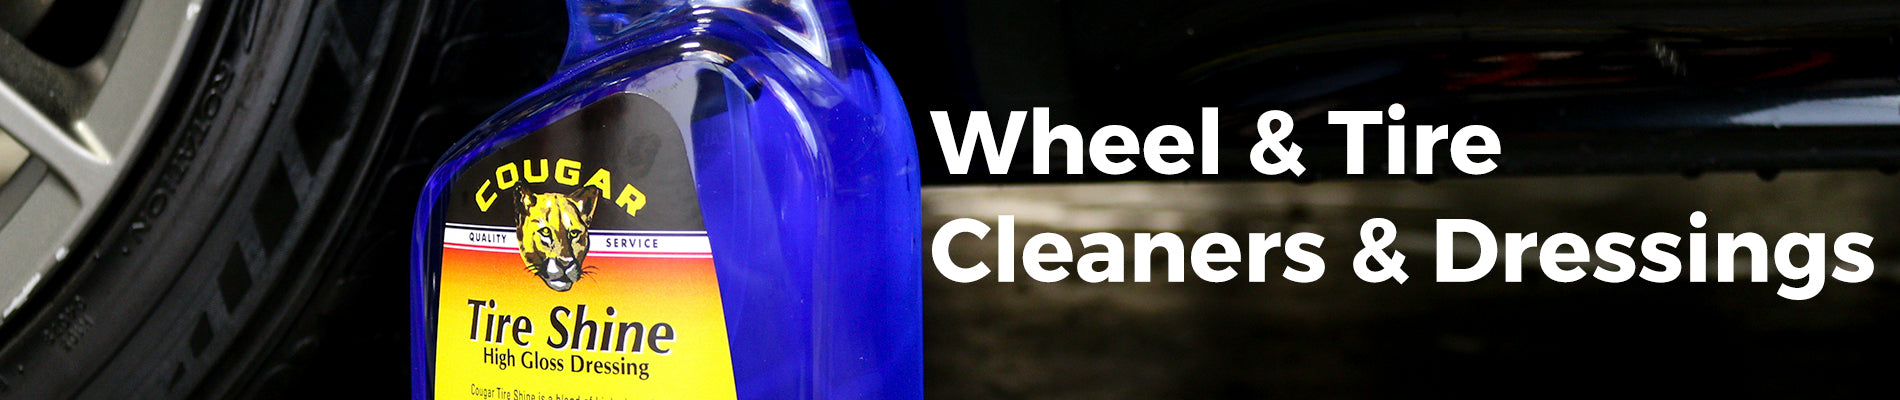 Wheel / Tire Cleaners & Dressings